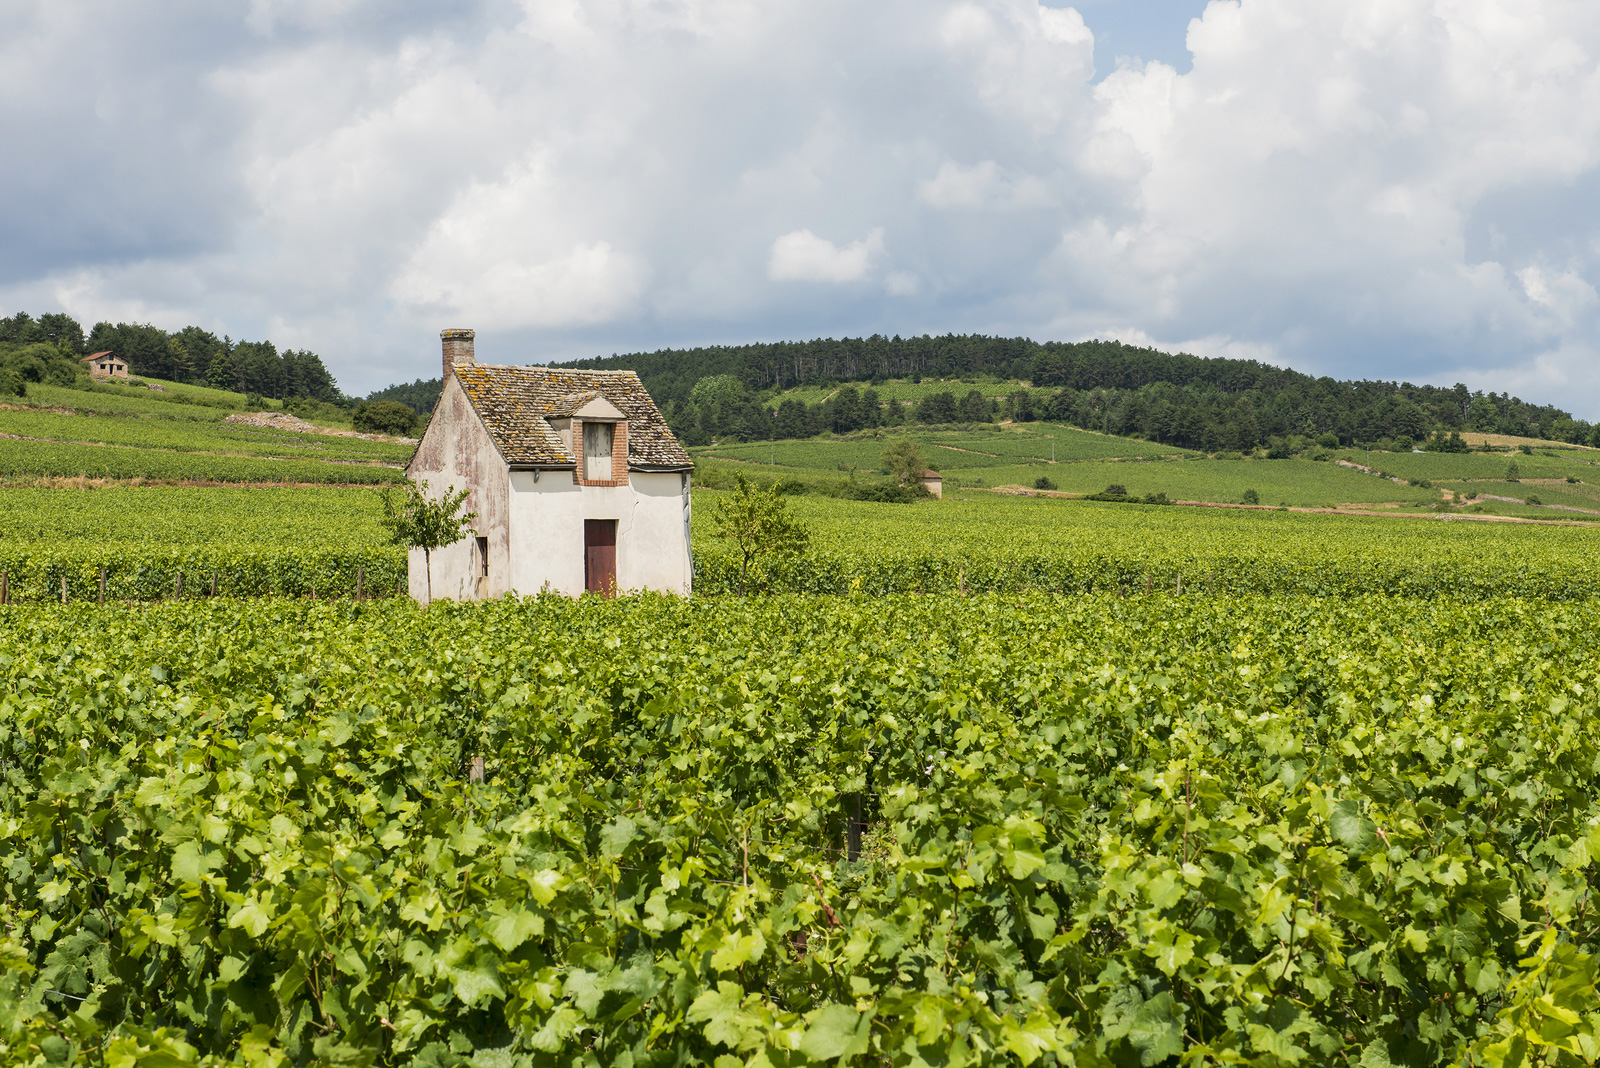 Vineyards near Beaune, France